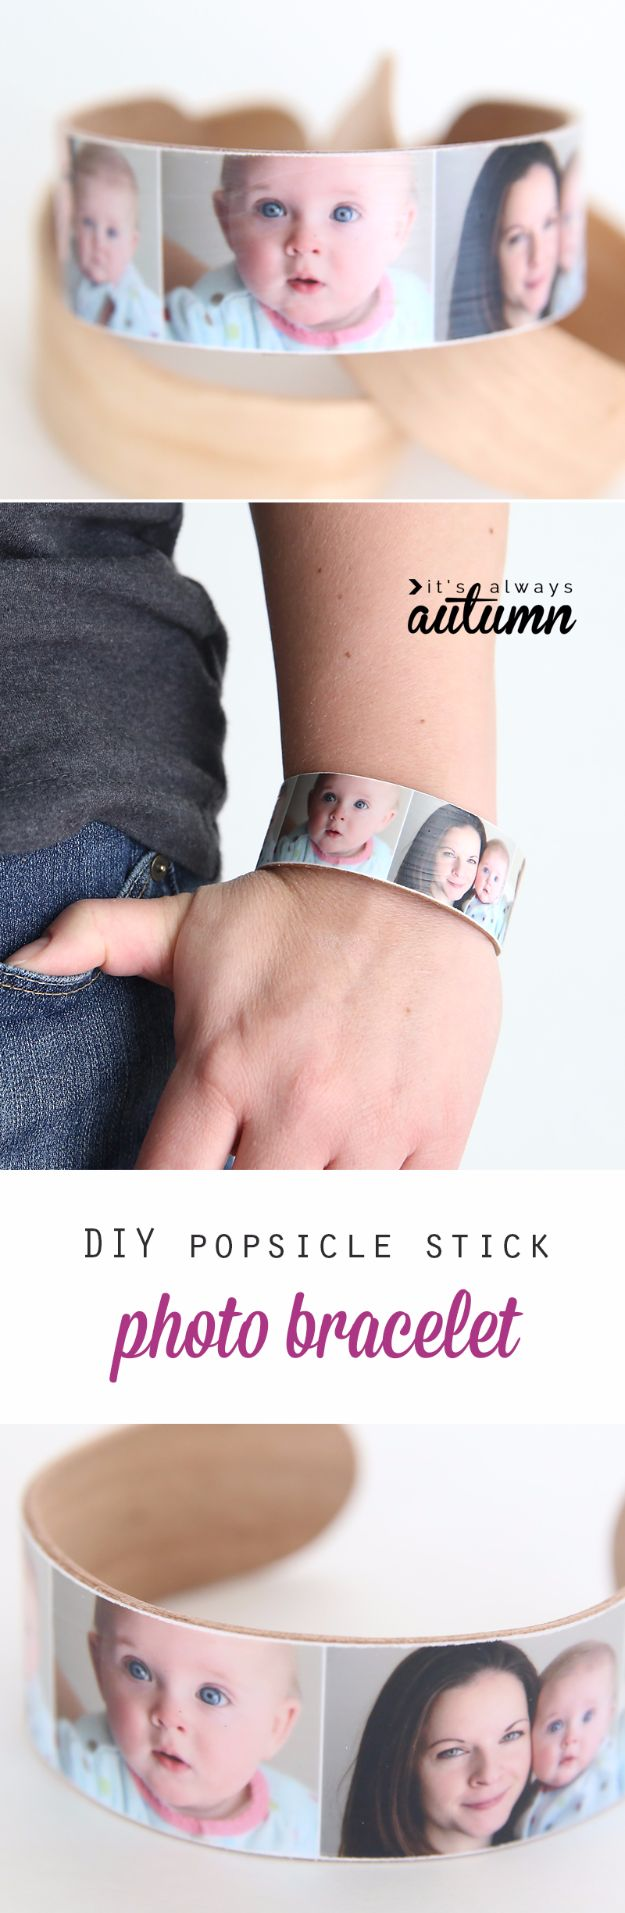 DIY Mothers Day Gift Ideas - DIY Popsicle Stick Photo Bracelet - Homemade Gifts for Moms - Crafts and Do It Yourself Home Decor, Accessories and Fashion To Make For Mom - Mothers Love Handmade Presents on Mother's Day - DIY Projects and Crafts by DIY JOY http://diyjoy.com/diy-mothers-day-gifts